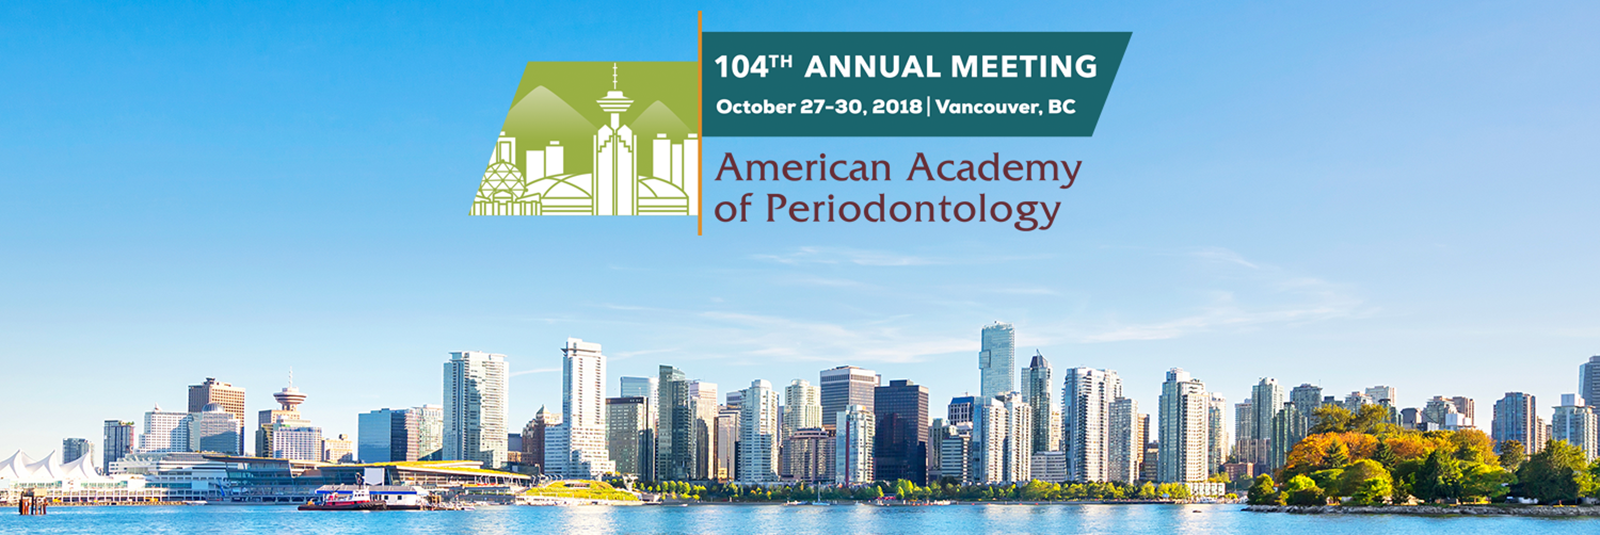 aap 2018 vancouver